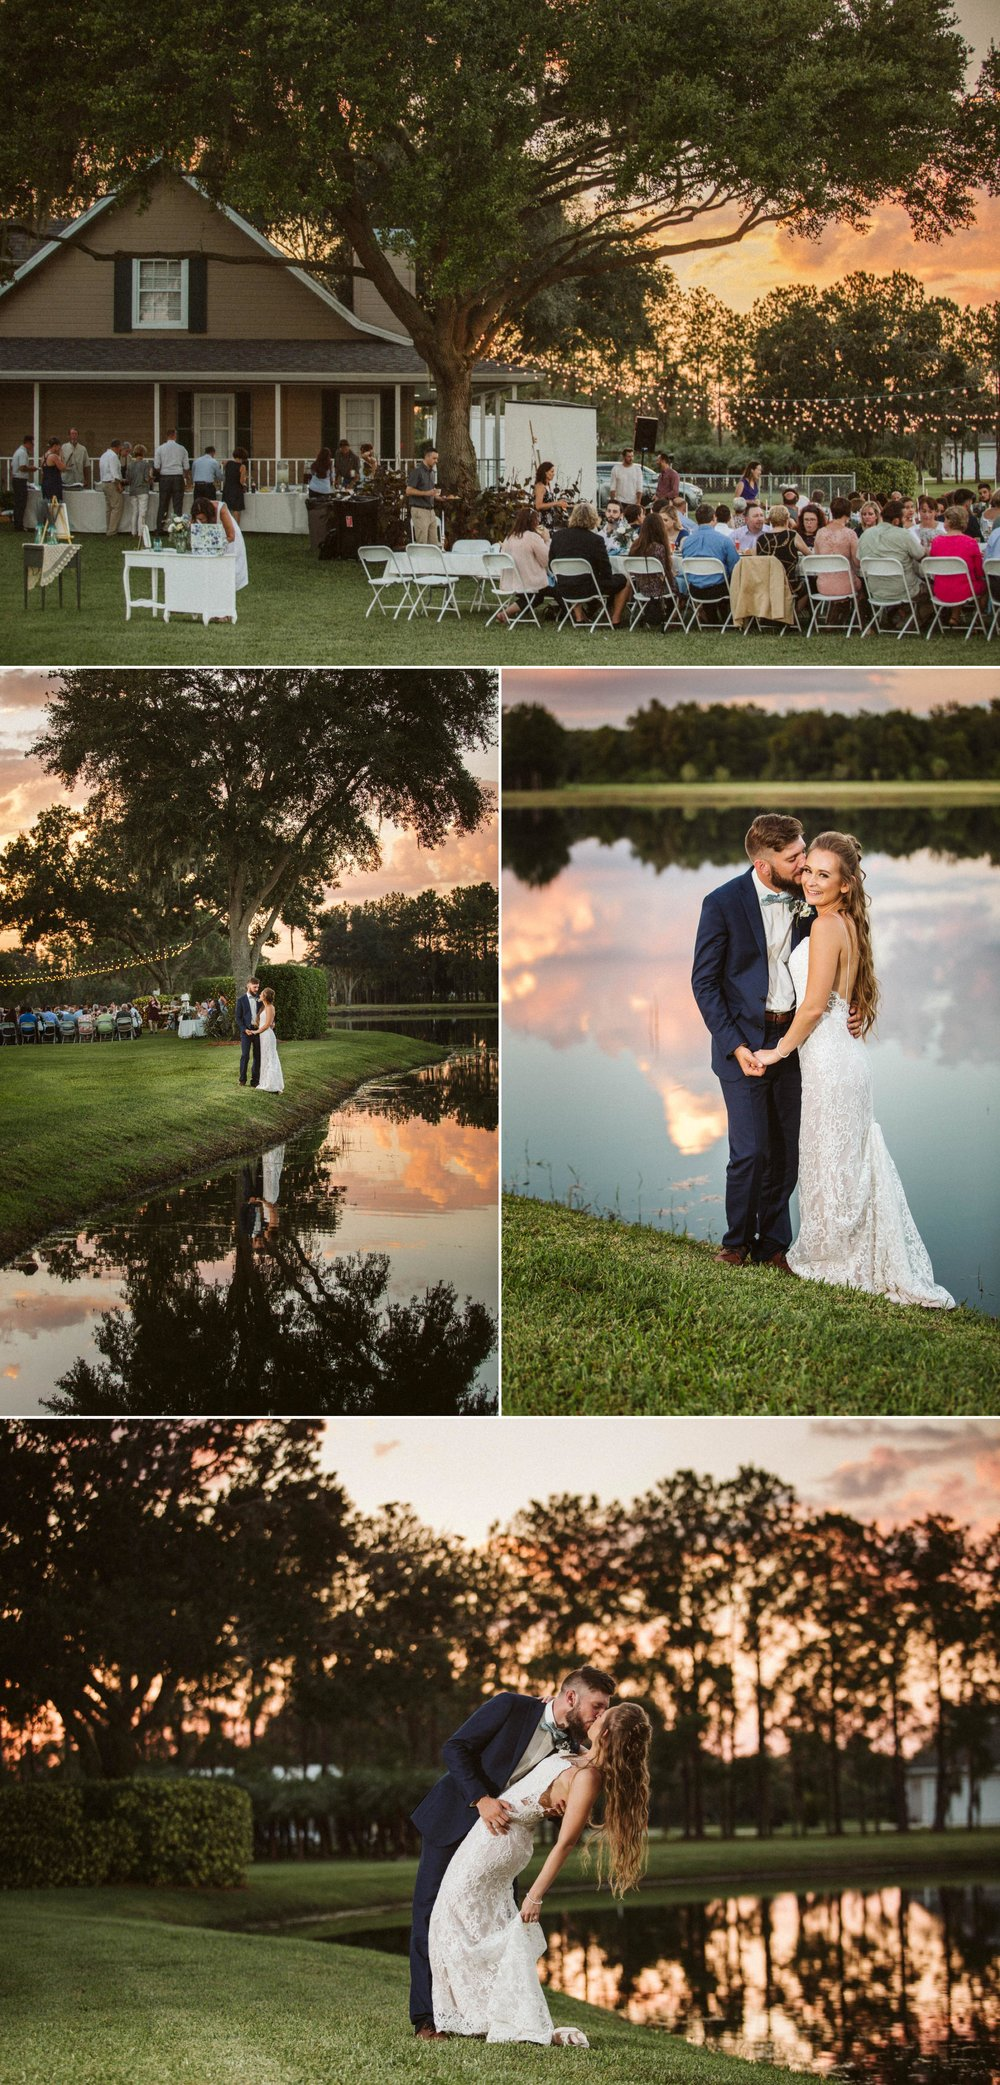 Romantic Floral Outdoor Field Chapel Wedding- Sarasota Florida- Courtney & Isaac24.jpg